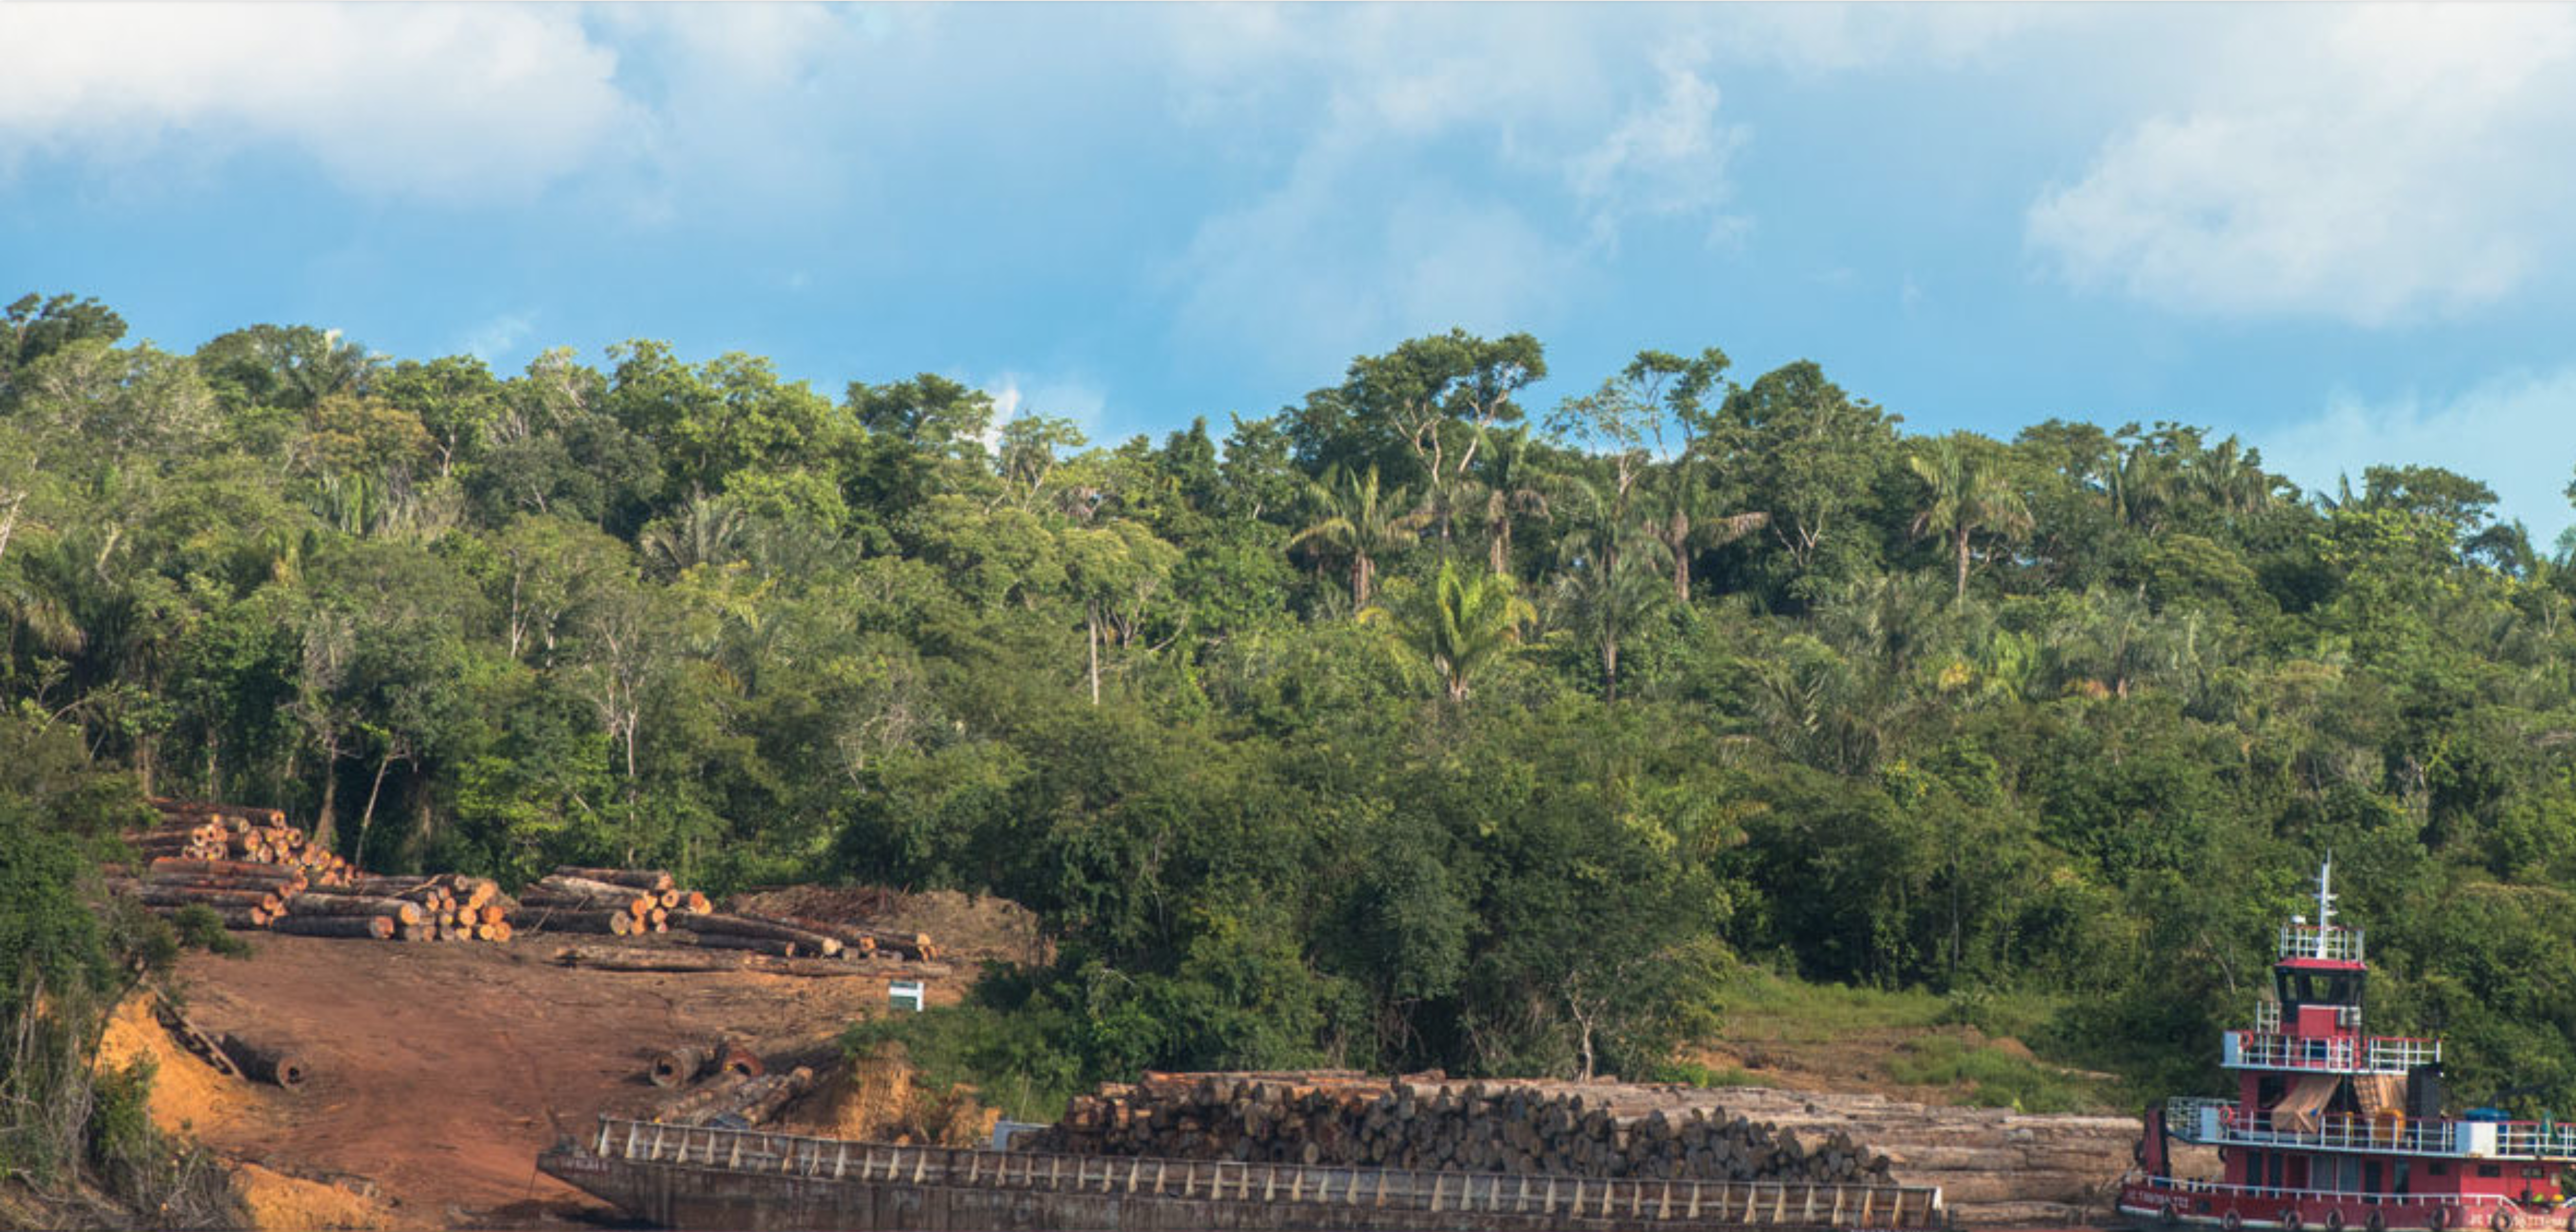 A barge laden with logs heads downriver. The Sateré fear that their ancestral lands on the Mariaquã River, mistakenly left out of the Andirá-Marau Indigenous Reserve, could be logged over by invaders. Image by Matheus Manfredini. Brazil, 2019.